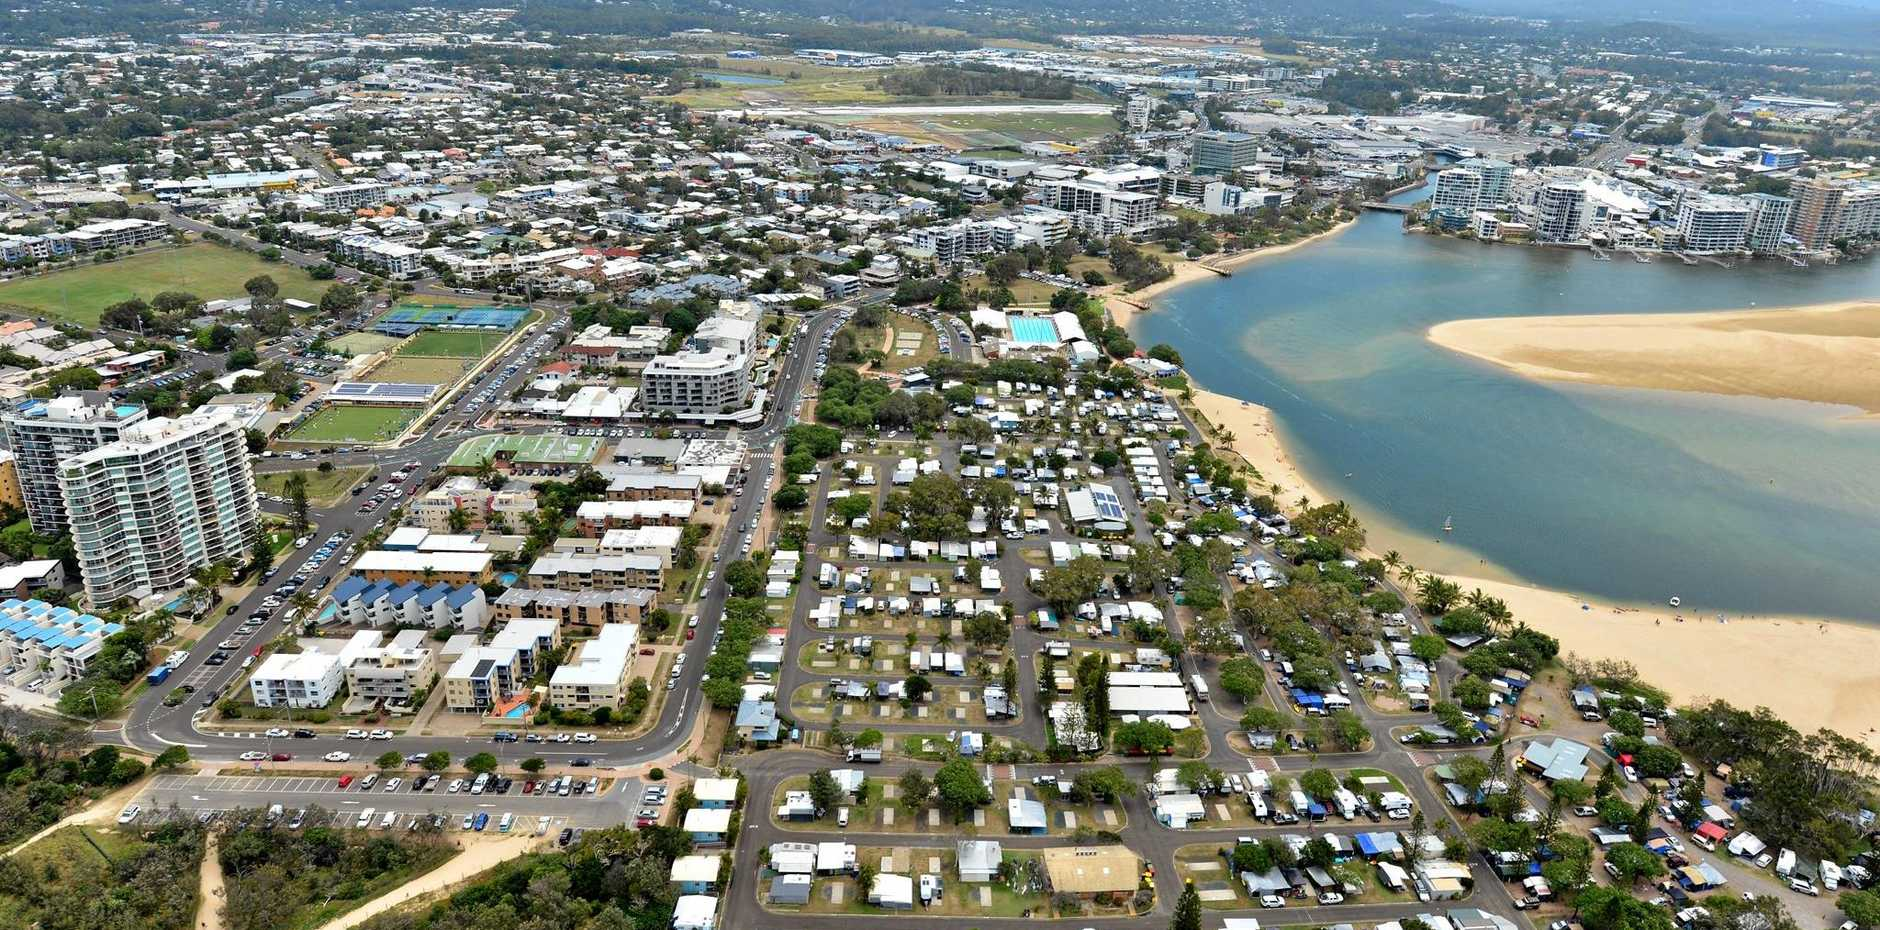 Analysis of new data has revealed median households in 27 Sunshine Coast suburbs are paying more than 30% of the weekly income in rent.